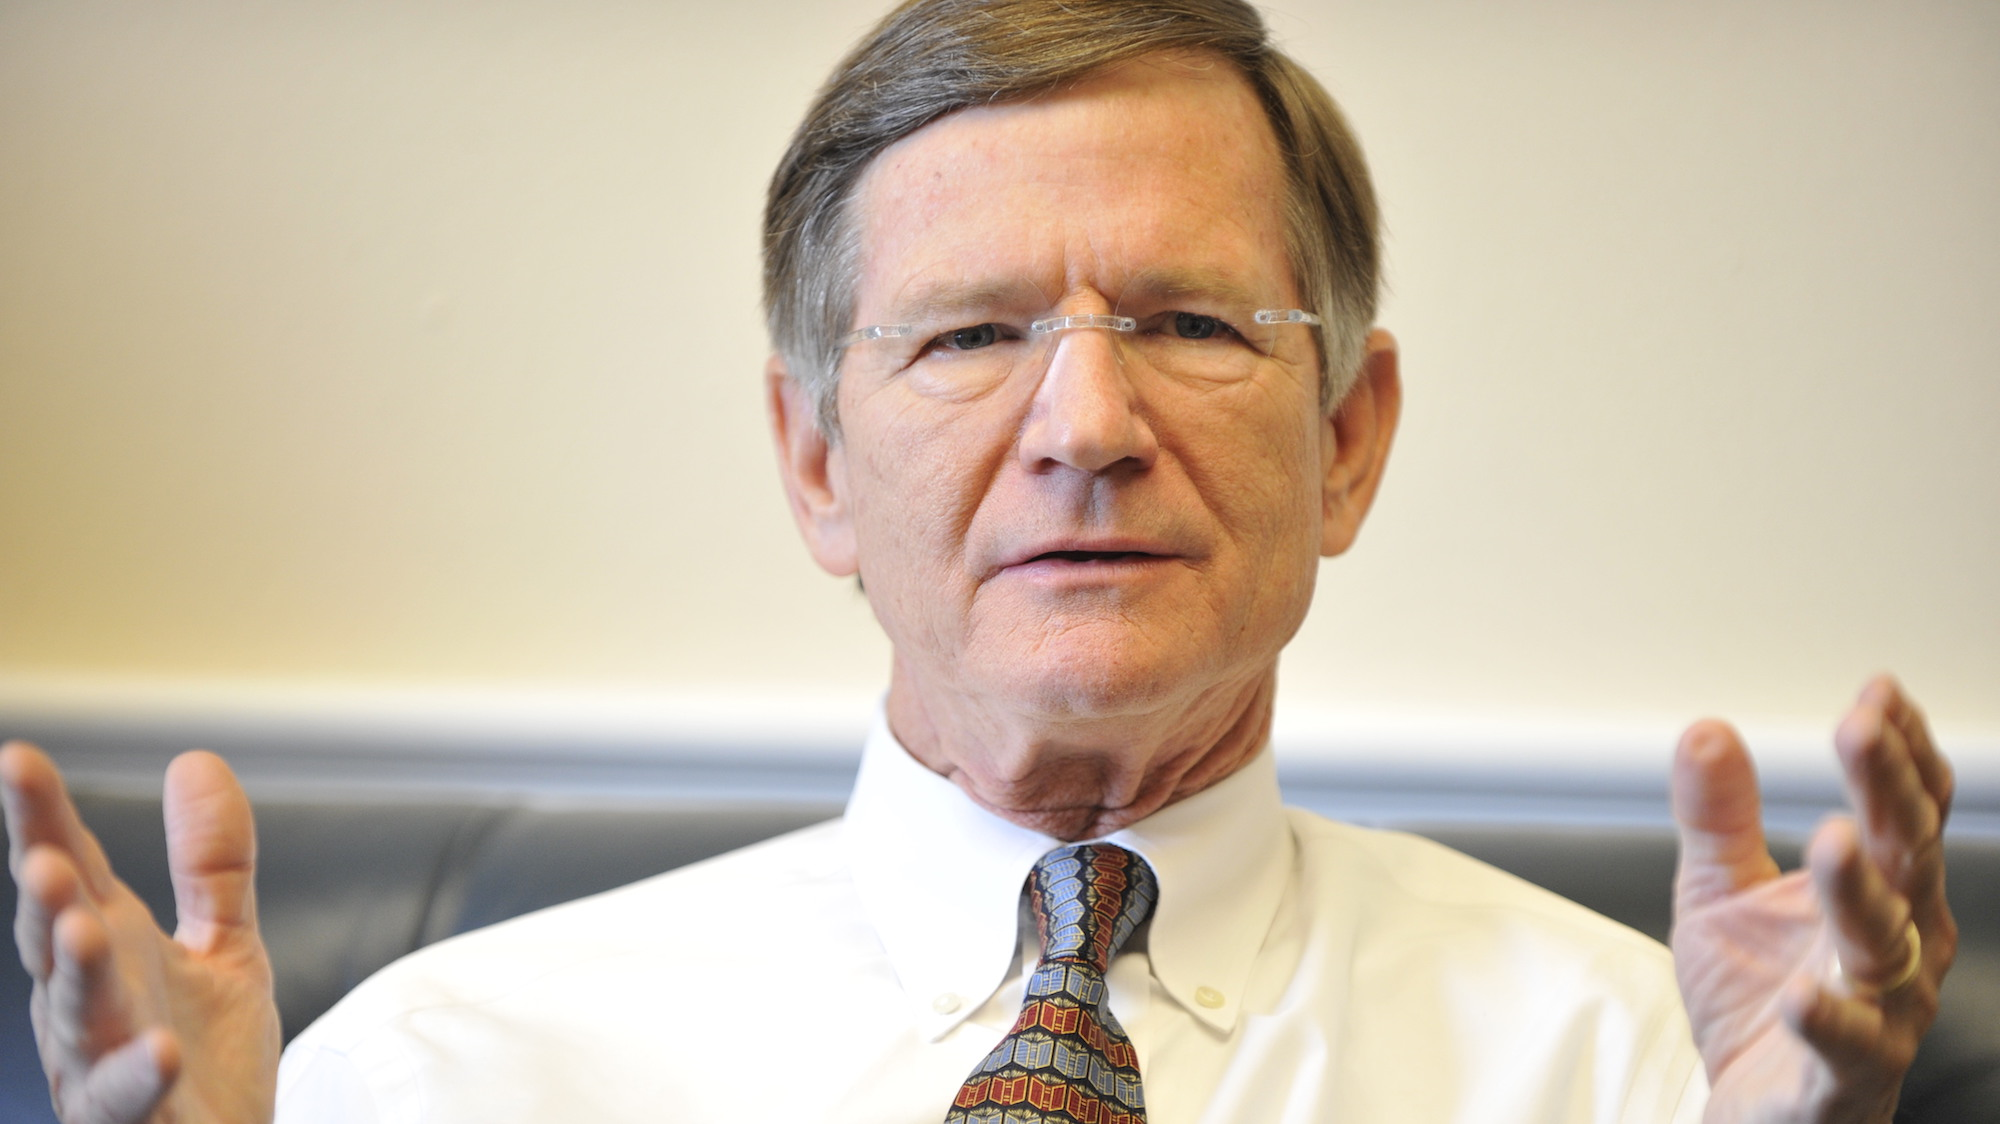 US Rep. Lamar Smith to retire